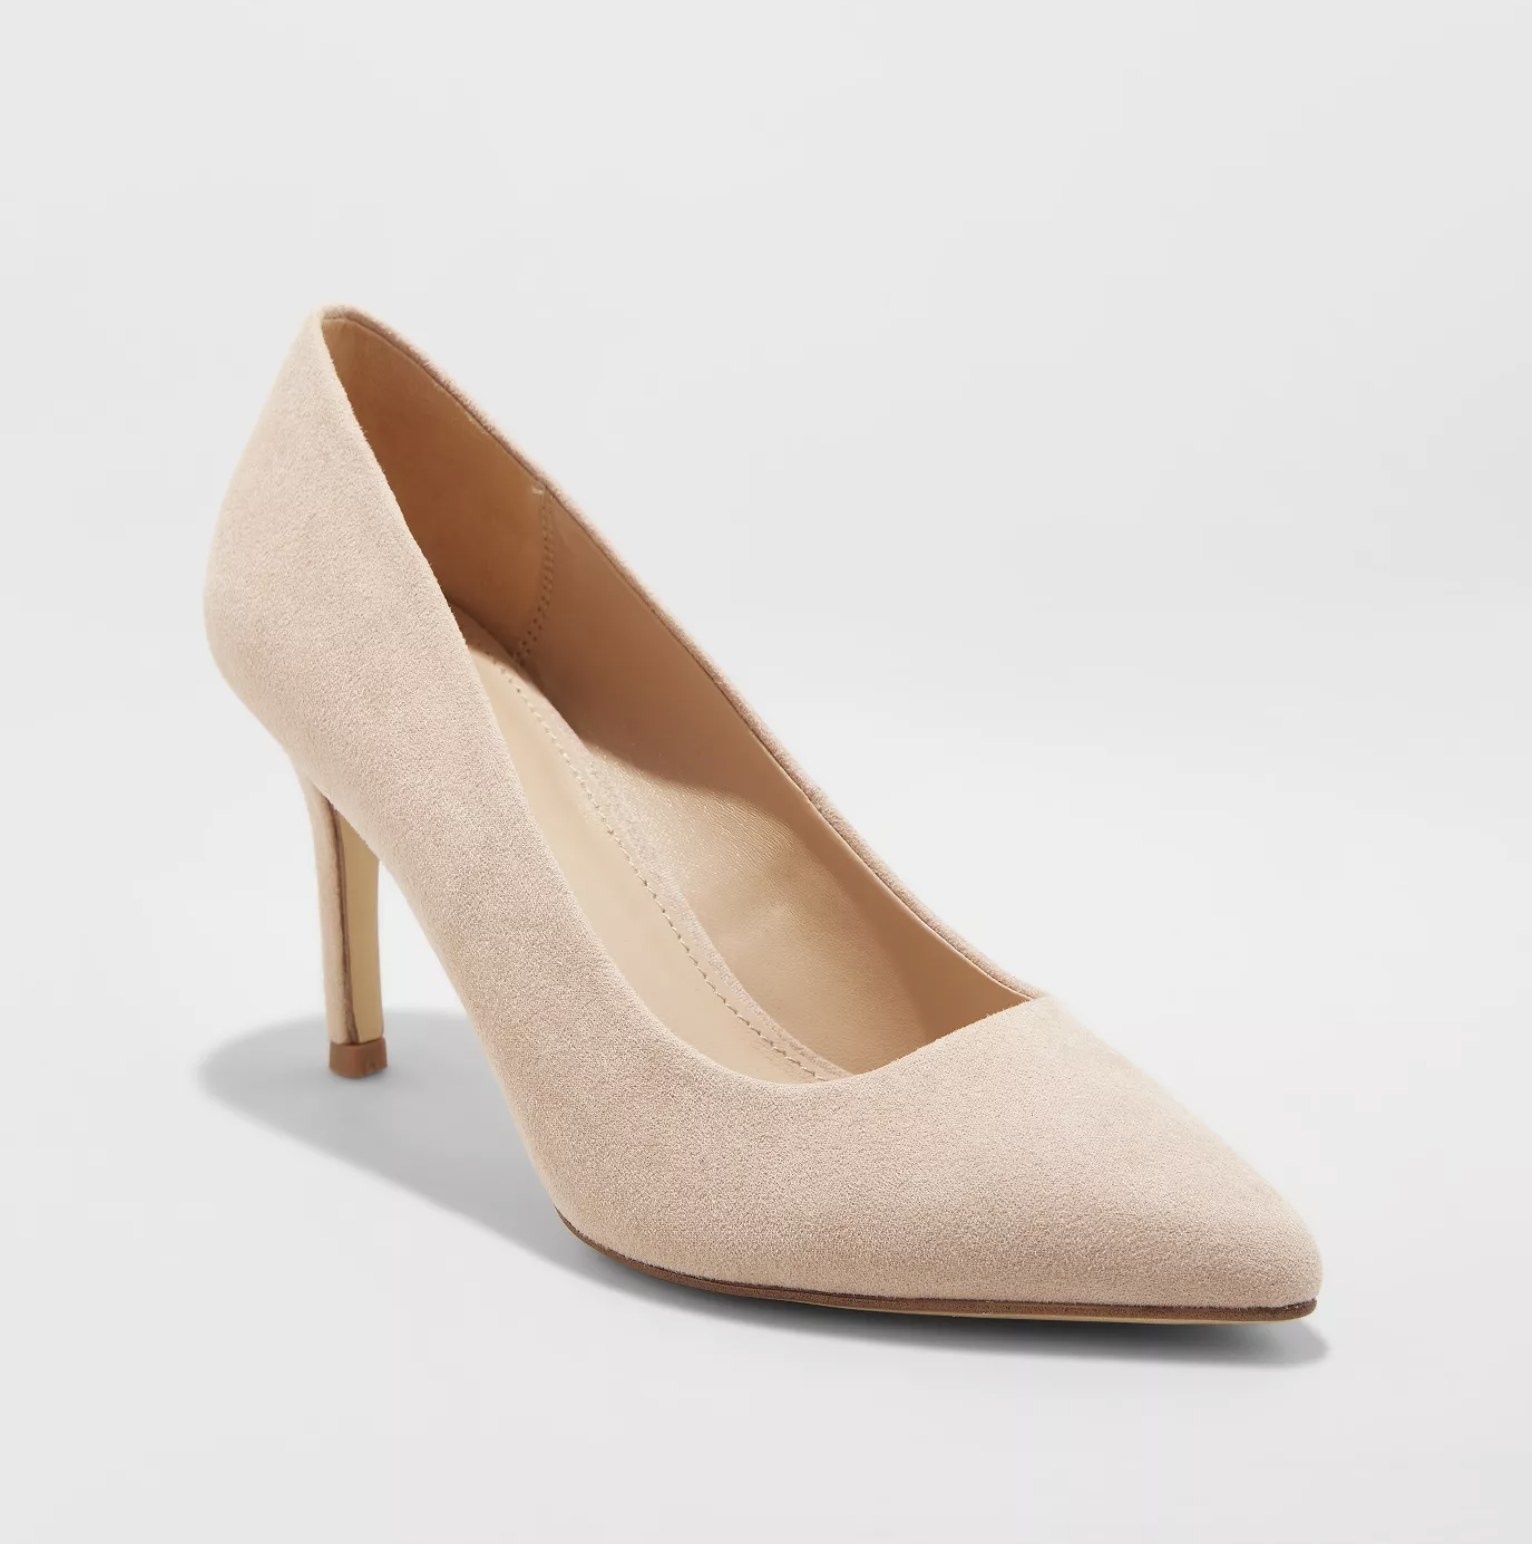 the blush pointed pumps